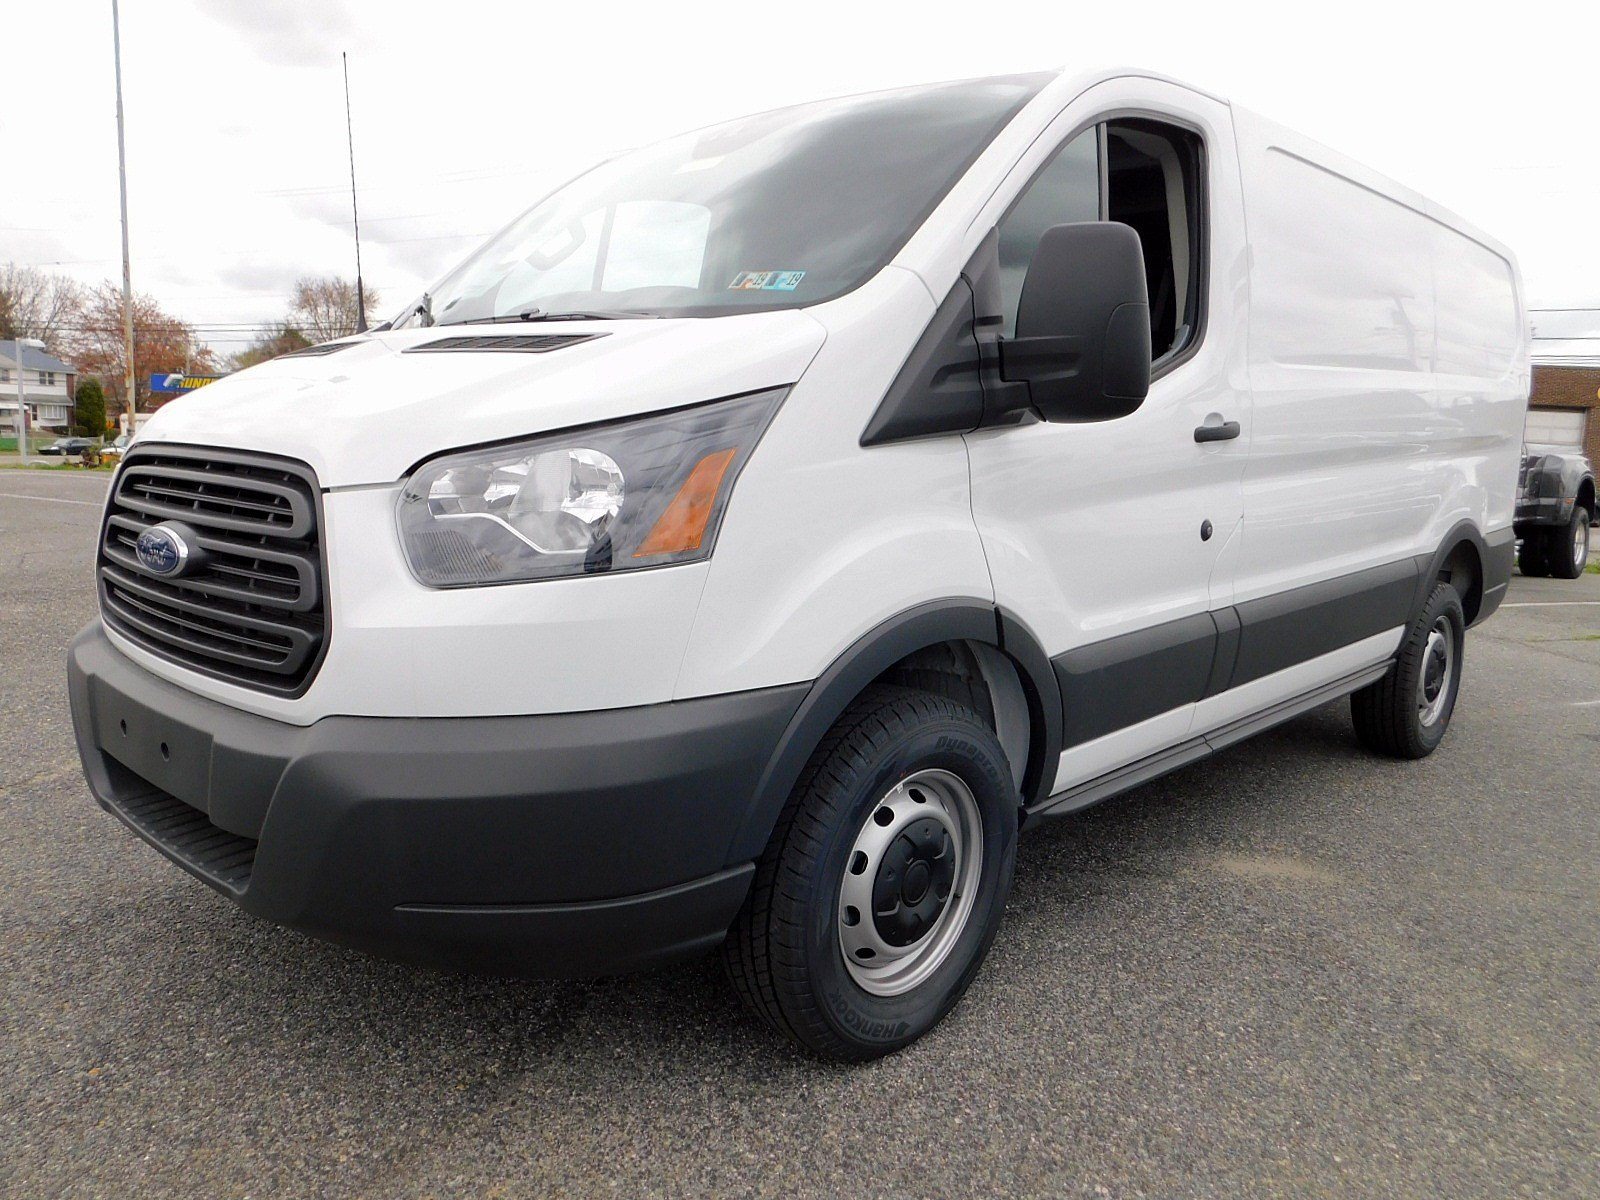 New 2018 Ford Transit Van Mini van Cargo in Delaware County PA